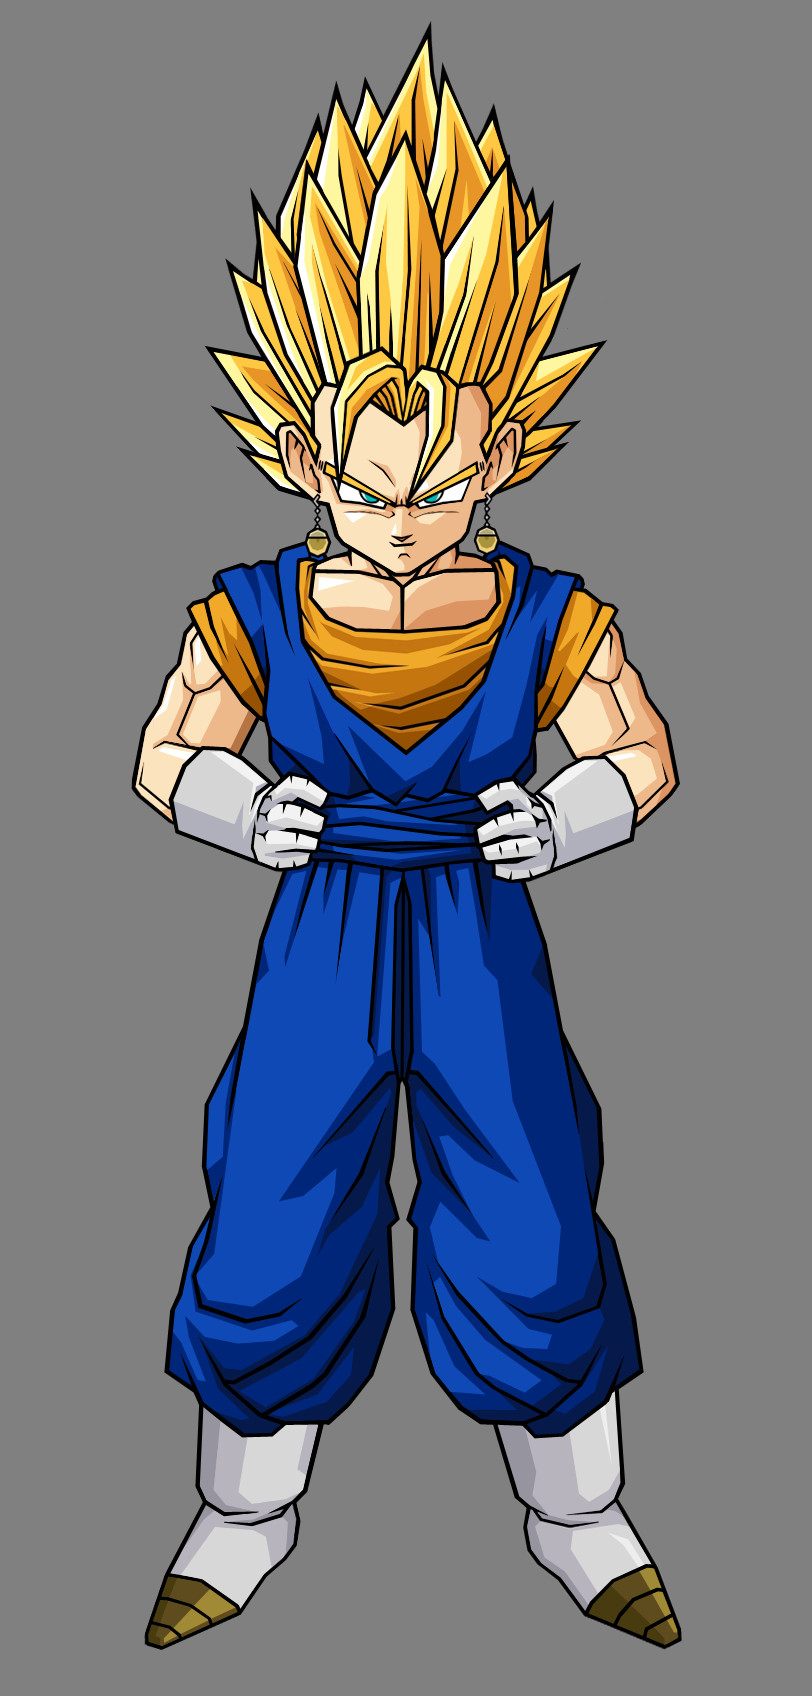 Kid Super Vegito By Hsvhrt On DeviantArt